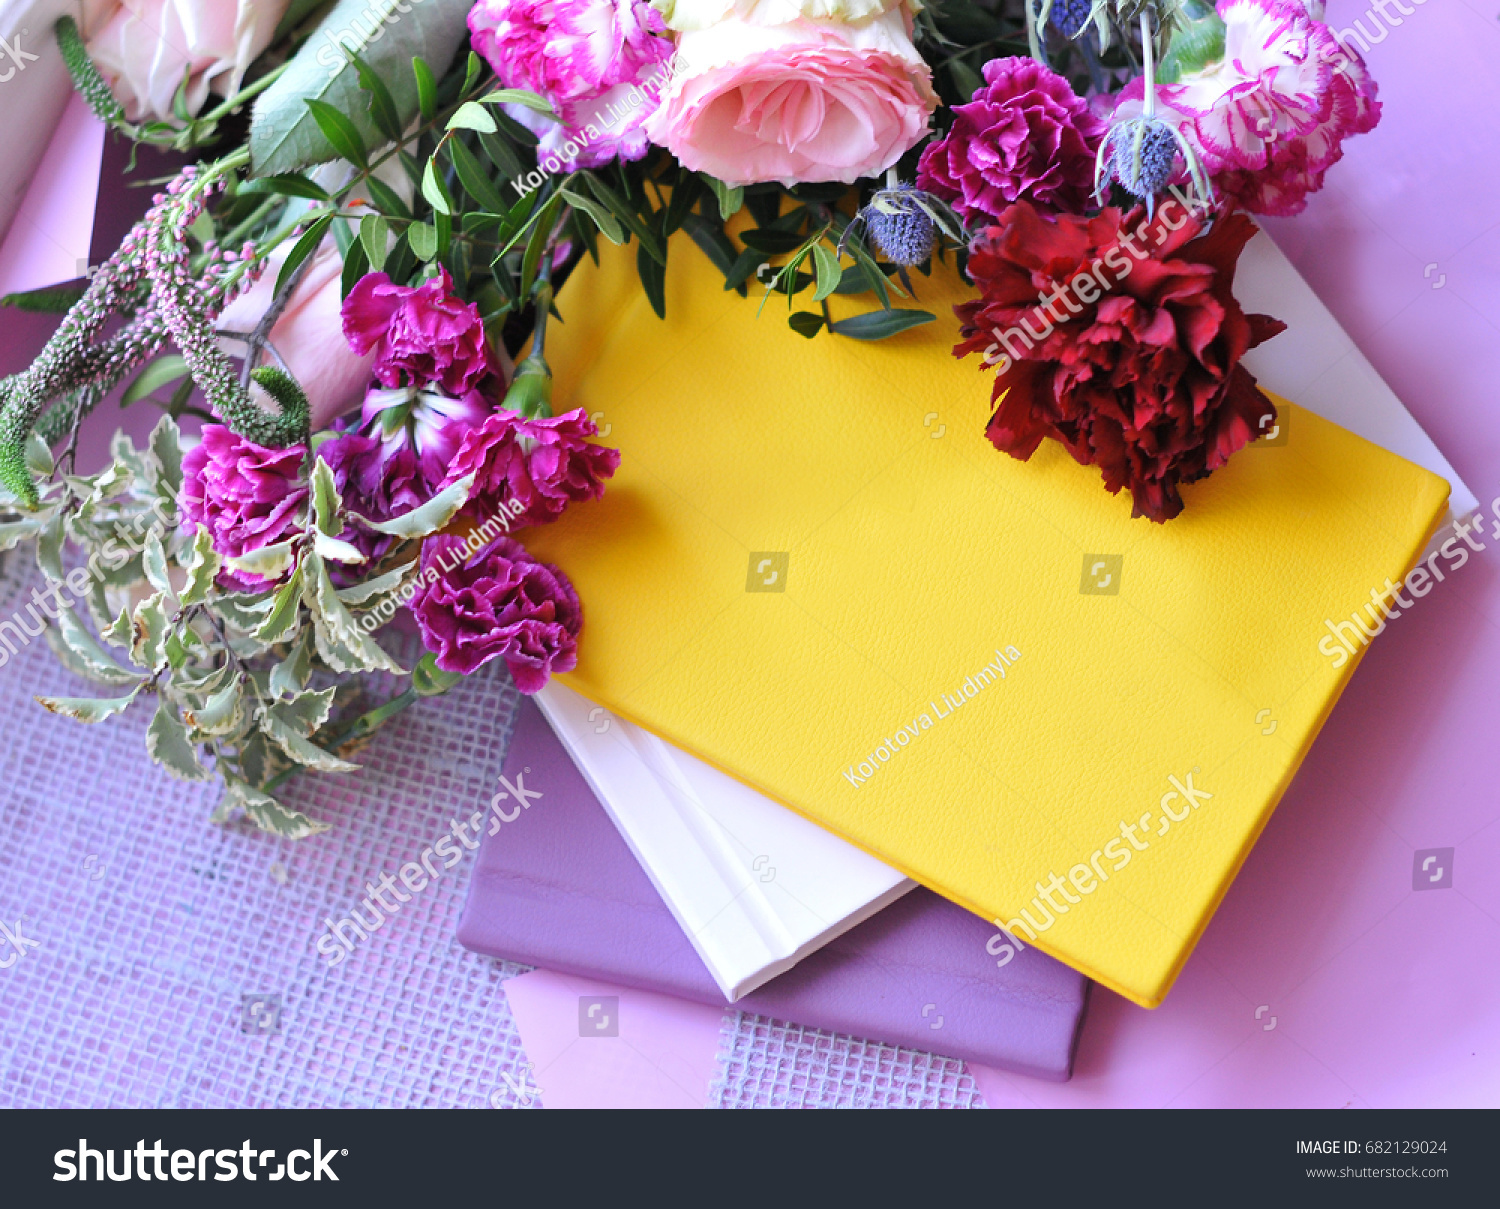 Yellow book entries hidden thoughts young stock photo royalty free yellow book of entries for the hidden thoughts of a young girl on a beautiful floral izmirmasajfo